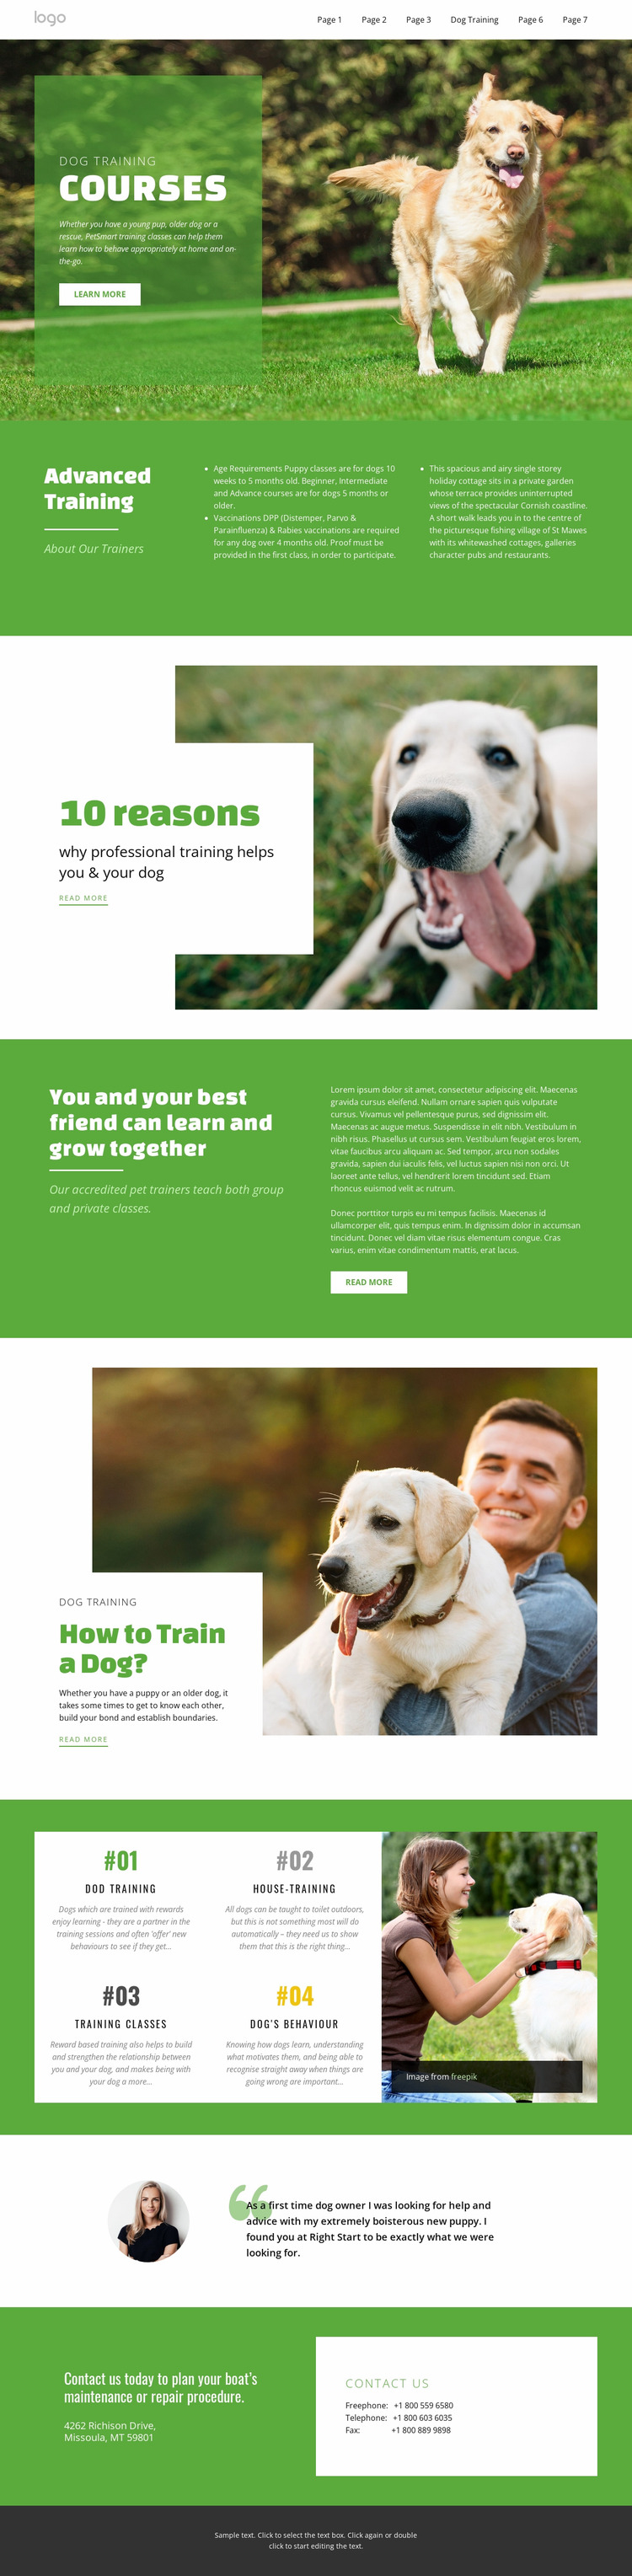 Training courses for pets Html Website Builder